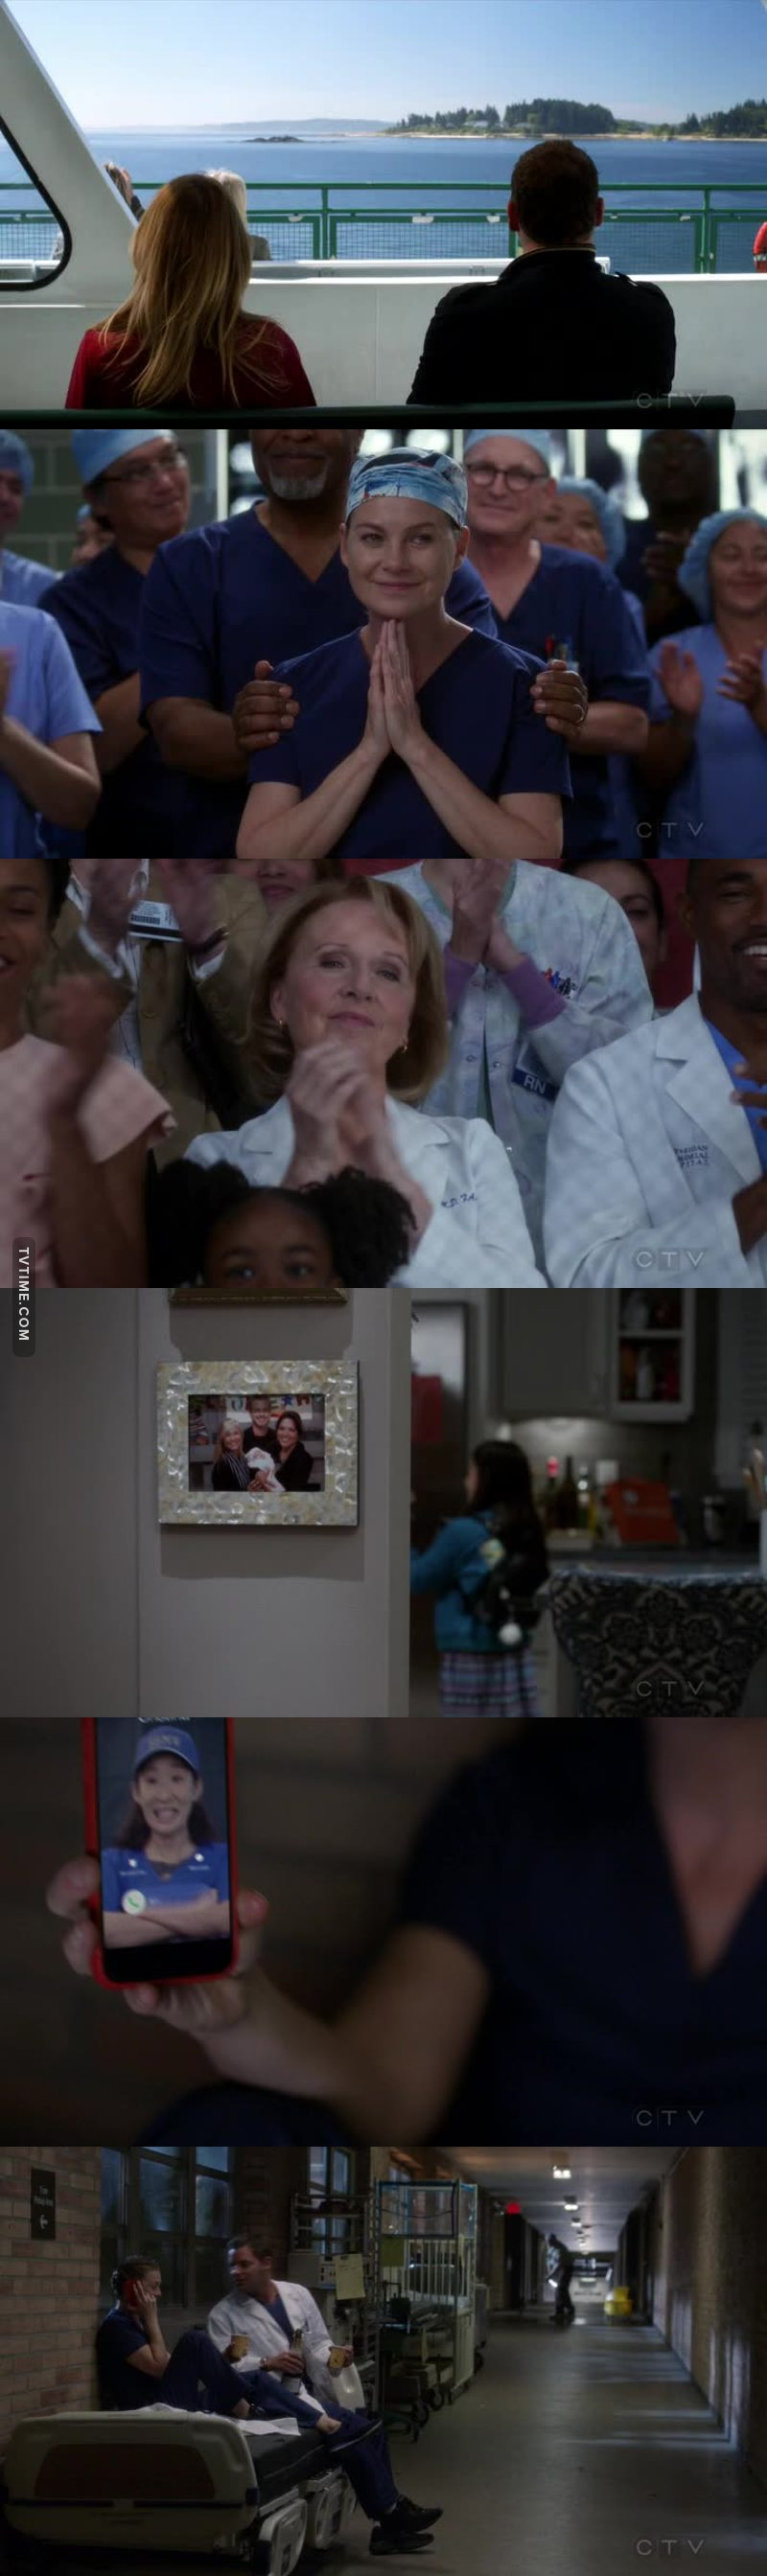 The ferry boat, the original theme song, references to Lexie, George, Cristina, Mark, Callie, Izzie, Meredith winning the Harper Avery, Mer seeing her mother and knowing she's finally proud of her, Cristina calling. This episode was perfect! Such a nostalgic feeling of the okd greys I really LOVE IT.